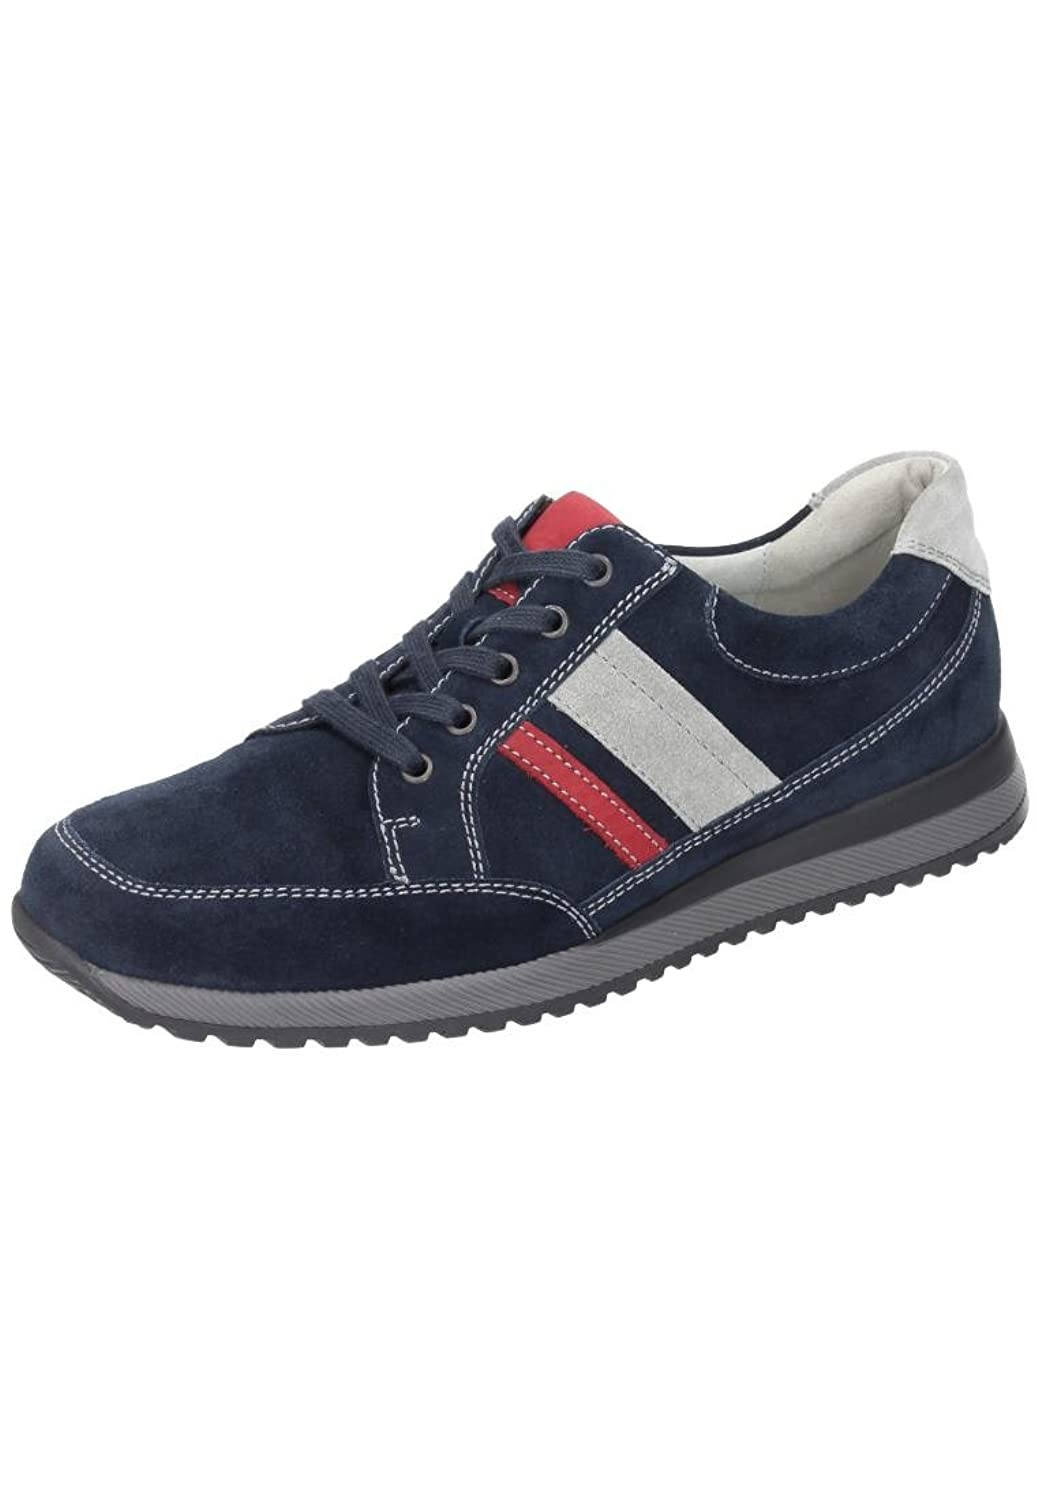 Waldl@ufer mens lace-up shoe deepblue